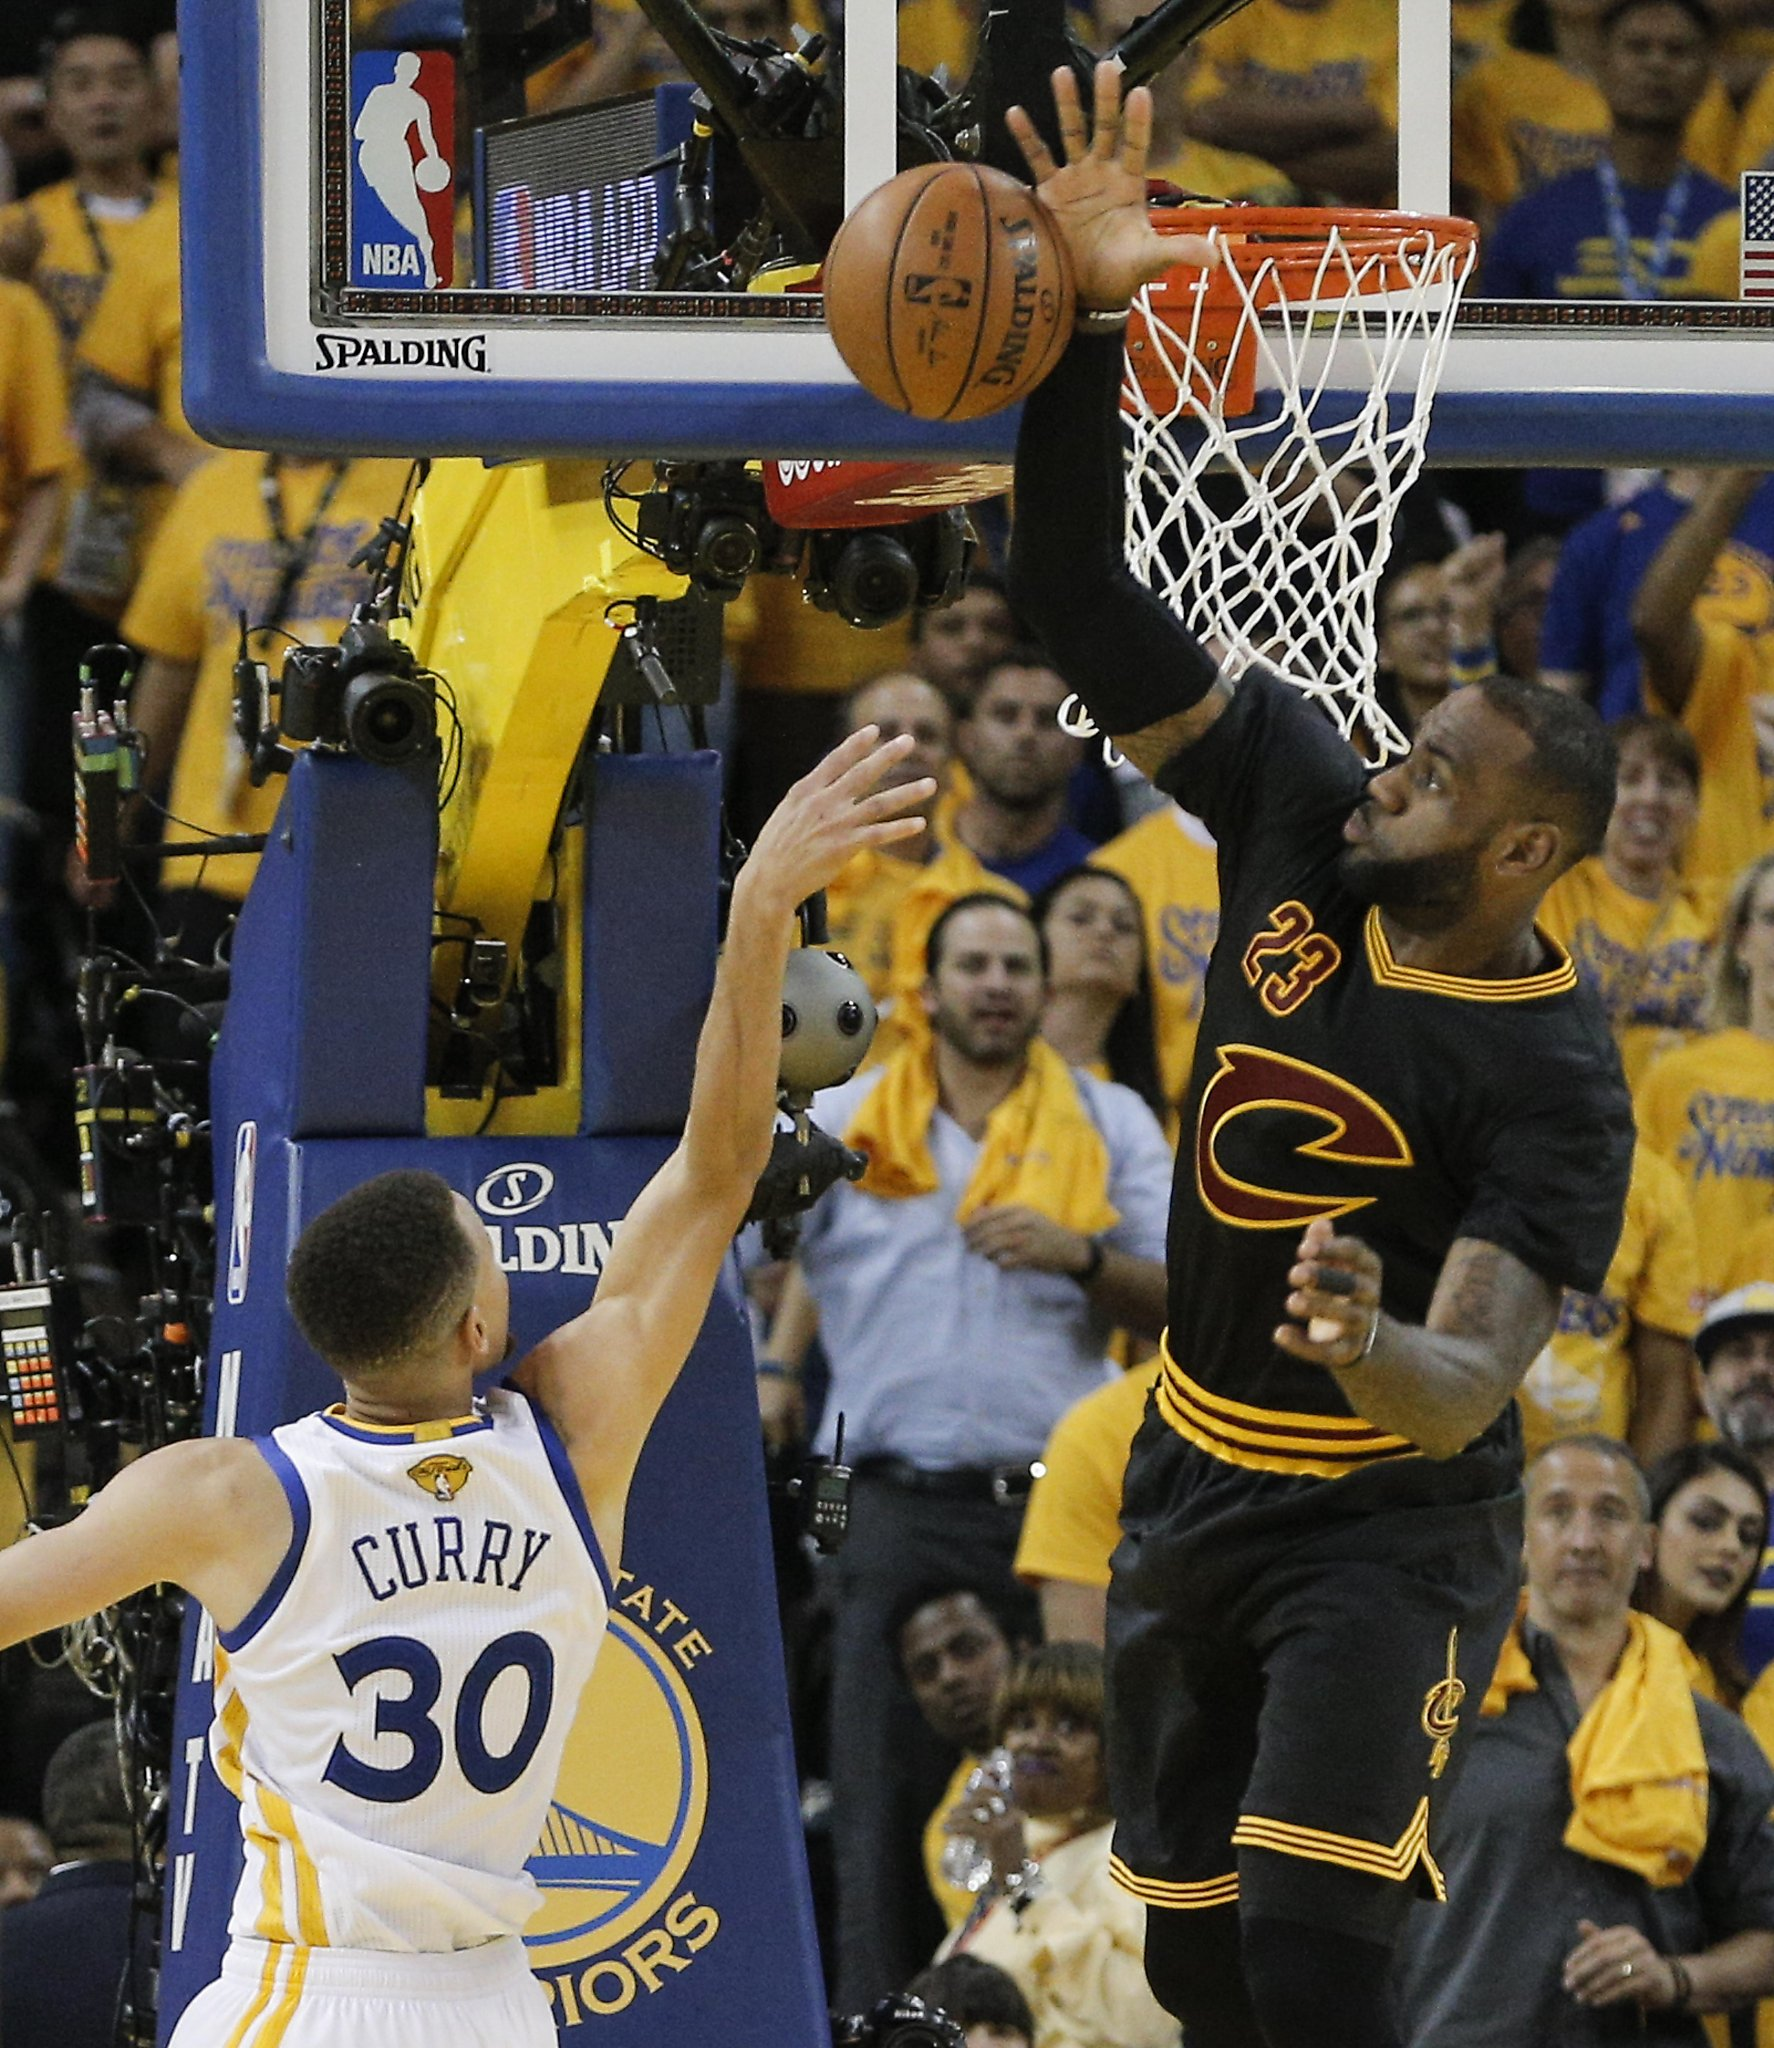 cavs survive thanks to breakout games from james irving sfgate